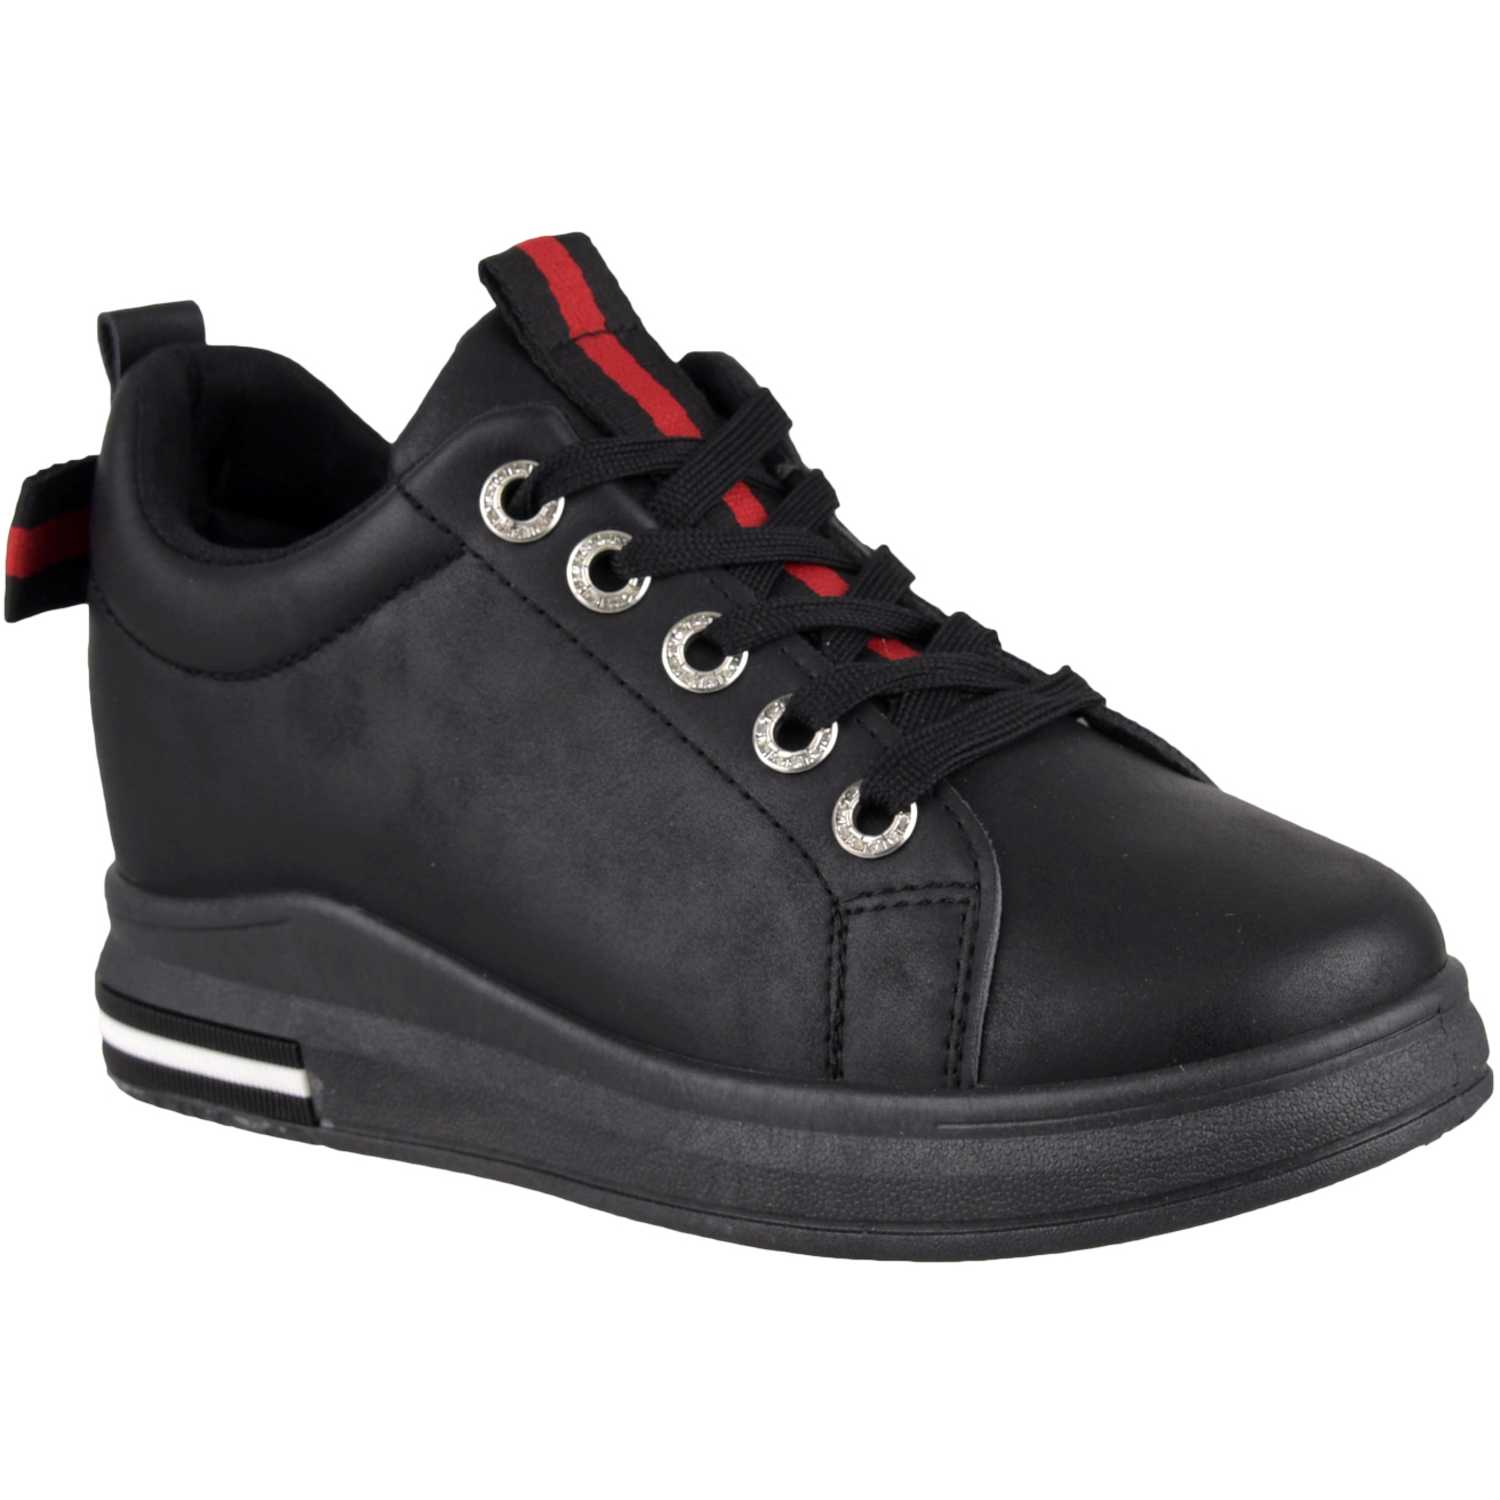 Platanitos zw 8469 Negro Zapatillas Fashion